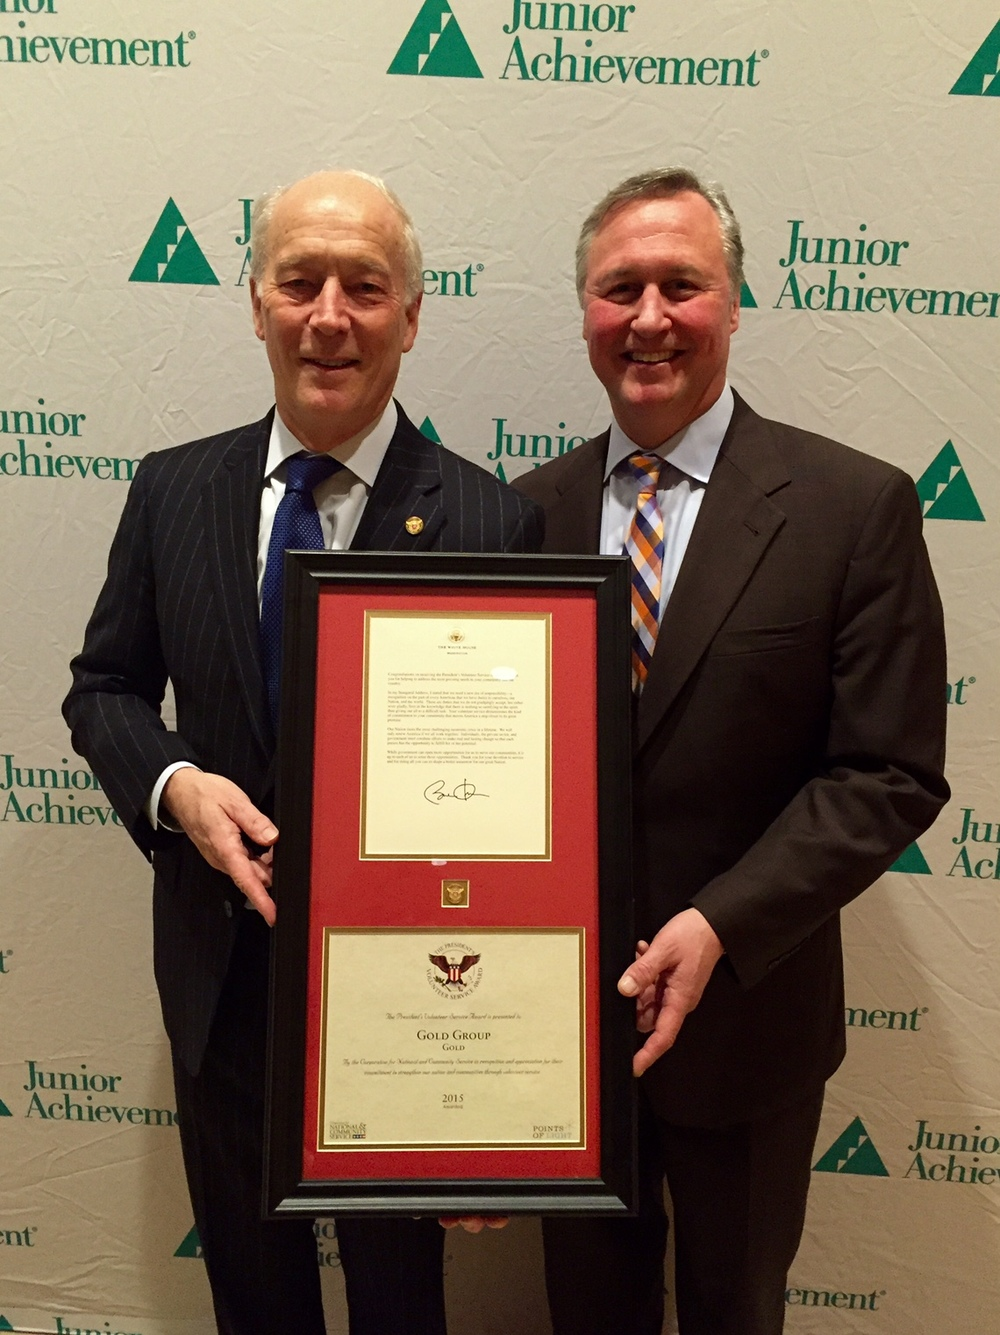 Ed Grenier, President and CEO of Junior Achievement of Greater Washington presents the U.S. President's Volunteer Service Award to  Richard Woods, Senior Vice President of Corporate Affairs at Capital One.